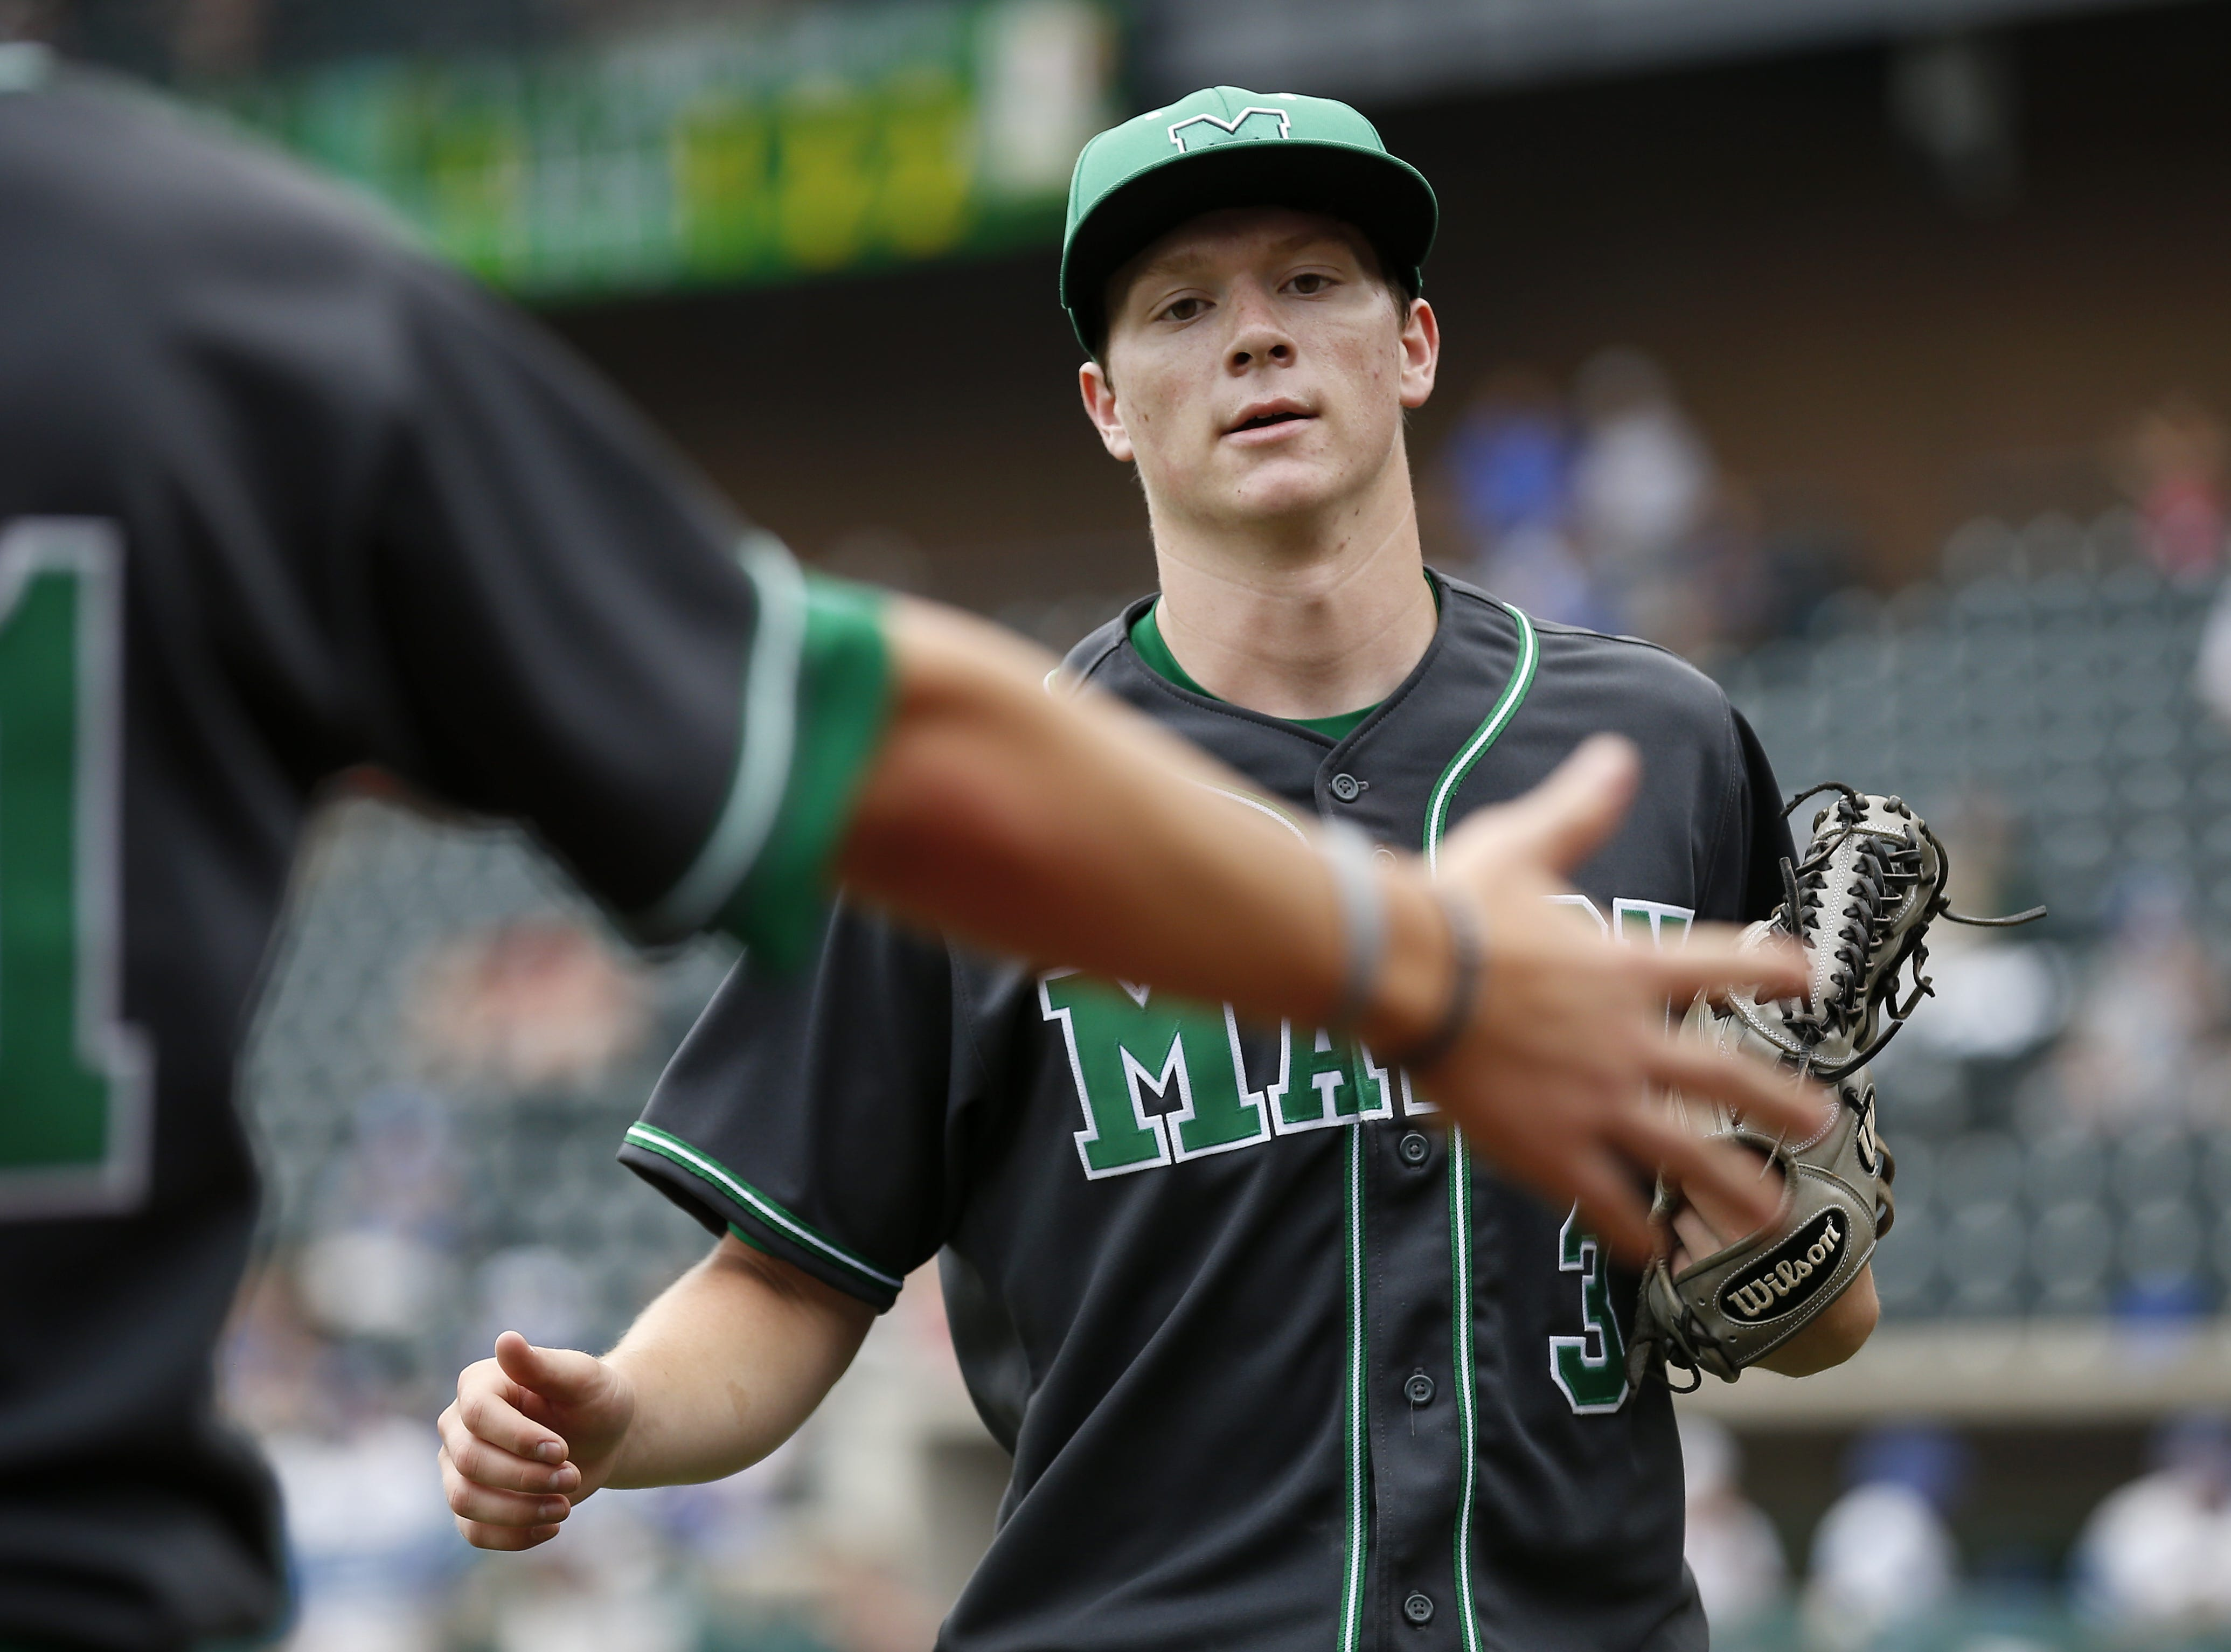 Mason Comets' Will Pfennig (3) returns to the dugout in the third inning of the OHSAA Div. I State Tournament semi-final baseball game between the Mason Comets and the Anthony Wayne Generals at Huntington Park in Columbus, Ohio, on Friday, June 1, 2018. The Anthony Wayne Generals advanced to the State Final with a 1-0 win over Mason.